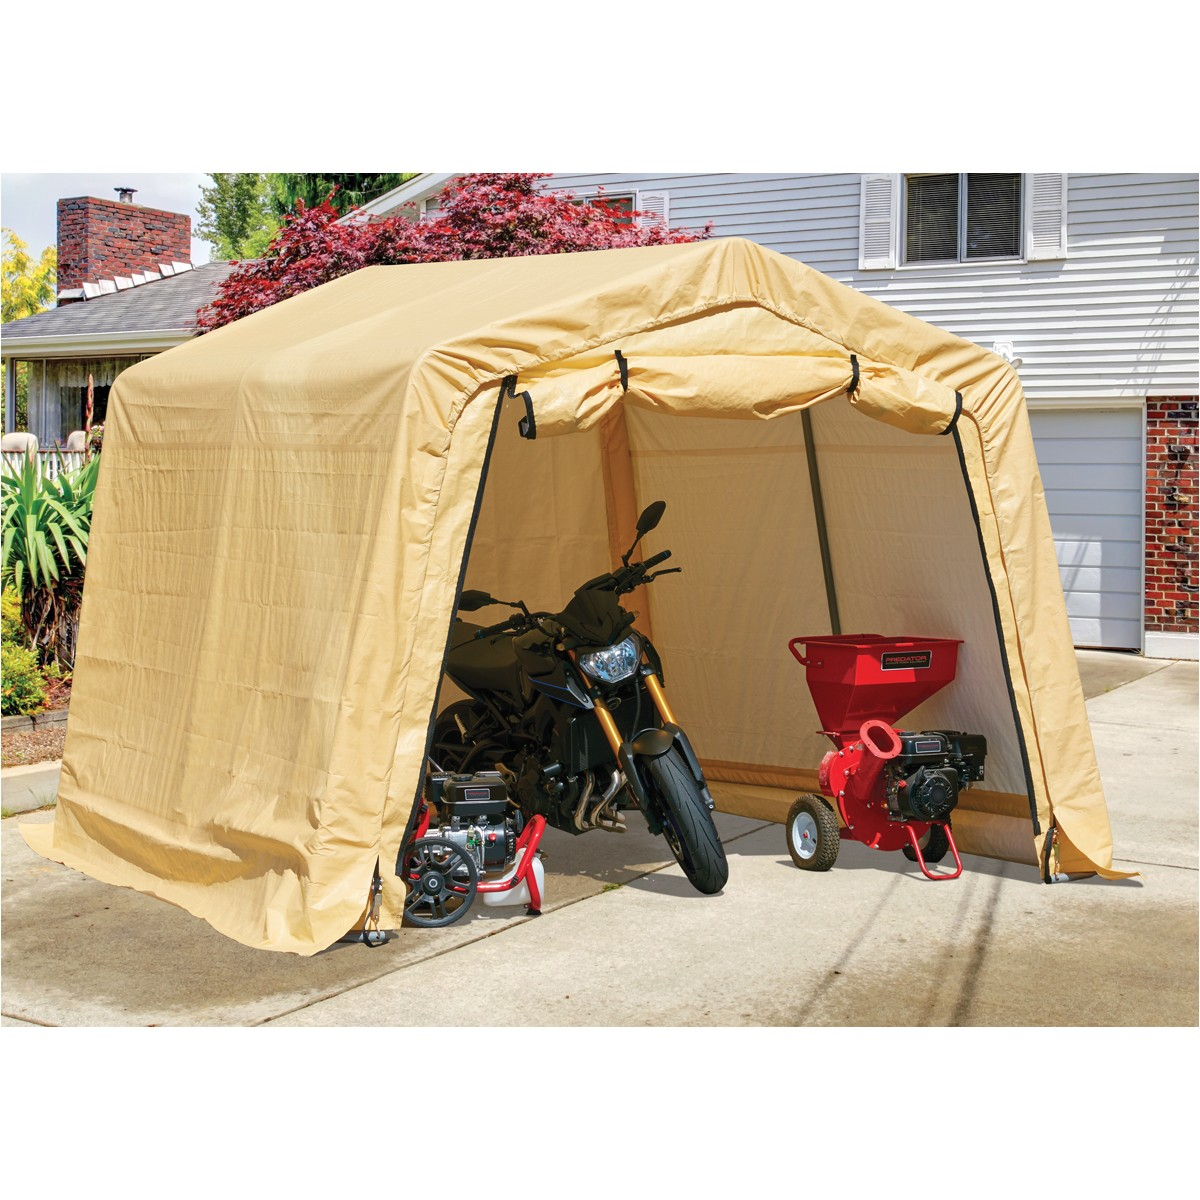 Harbor Freight Portable Garage Replacement Cover 10 Ft X 10 Ft Portable Shed